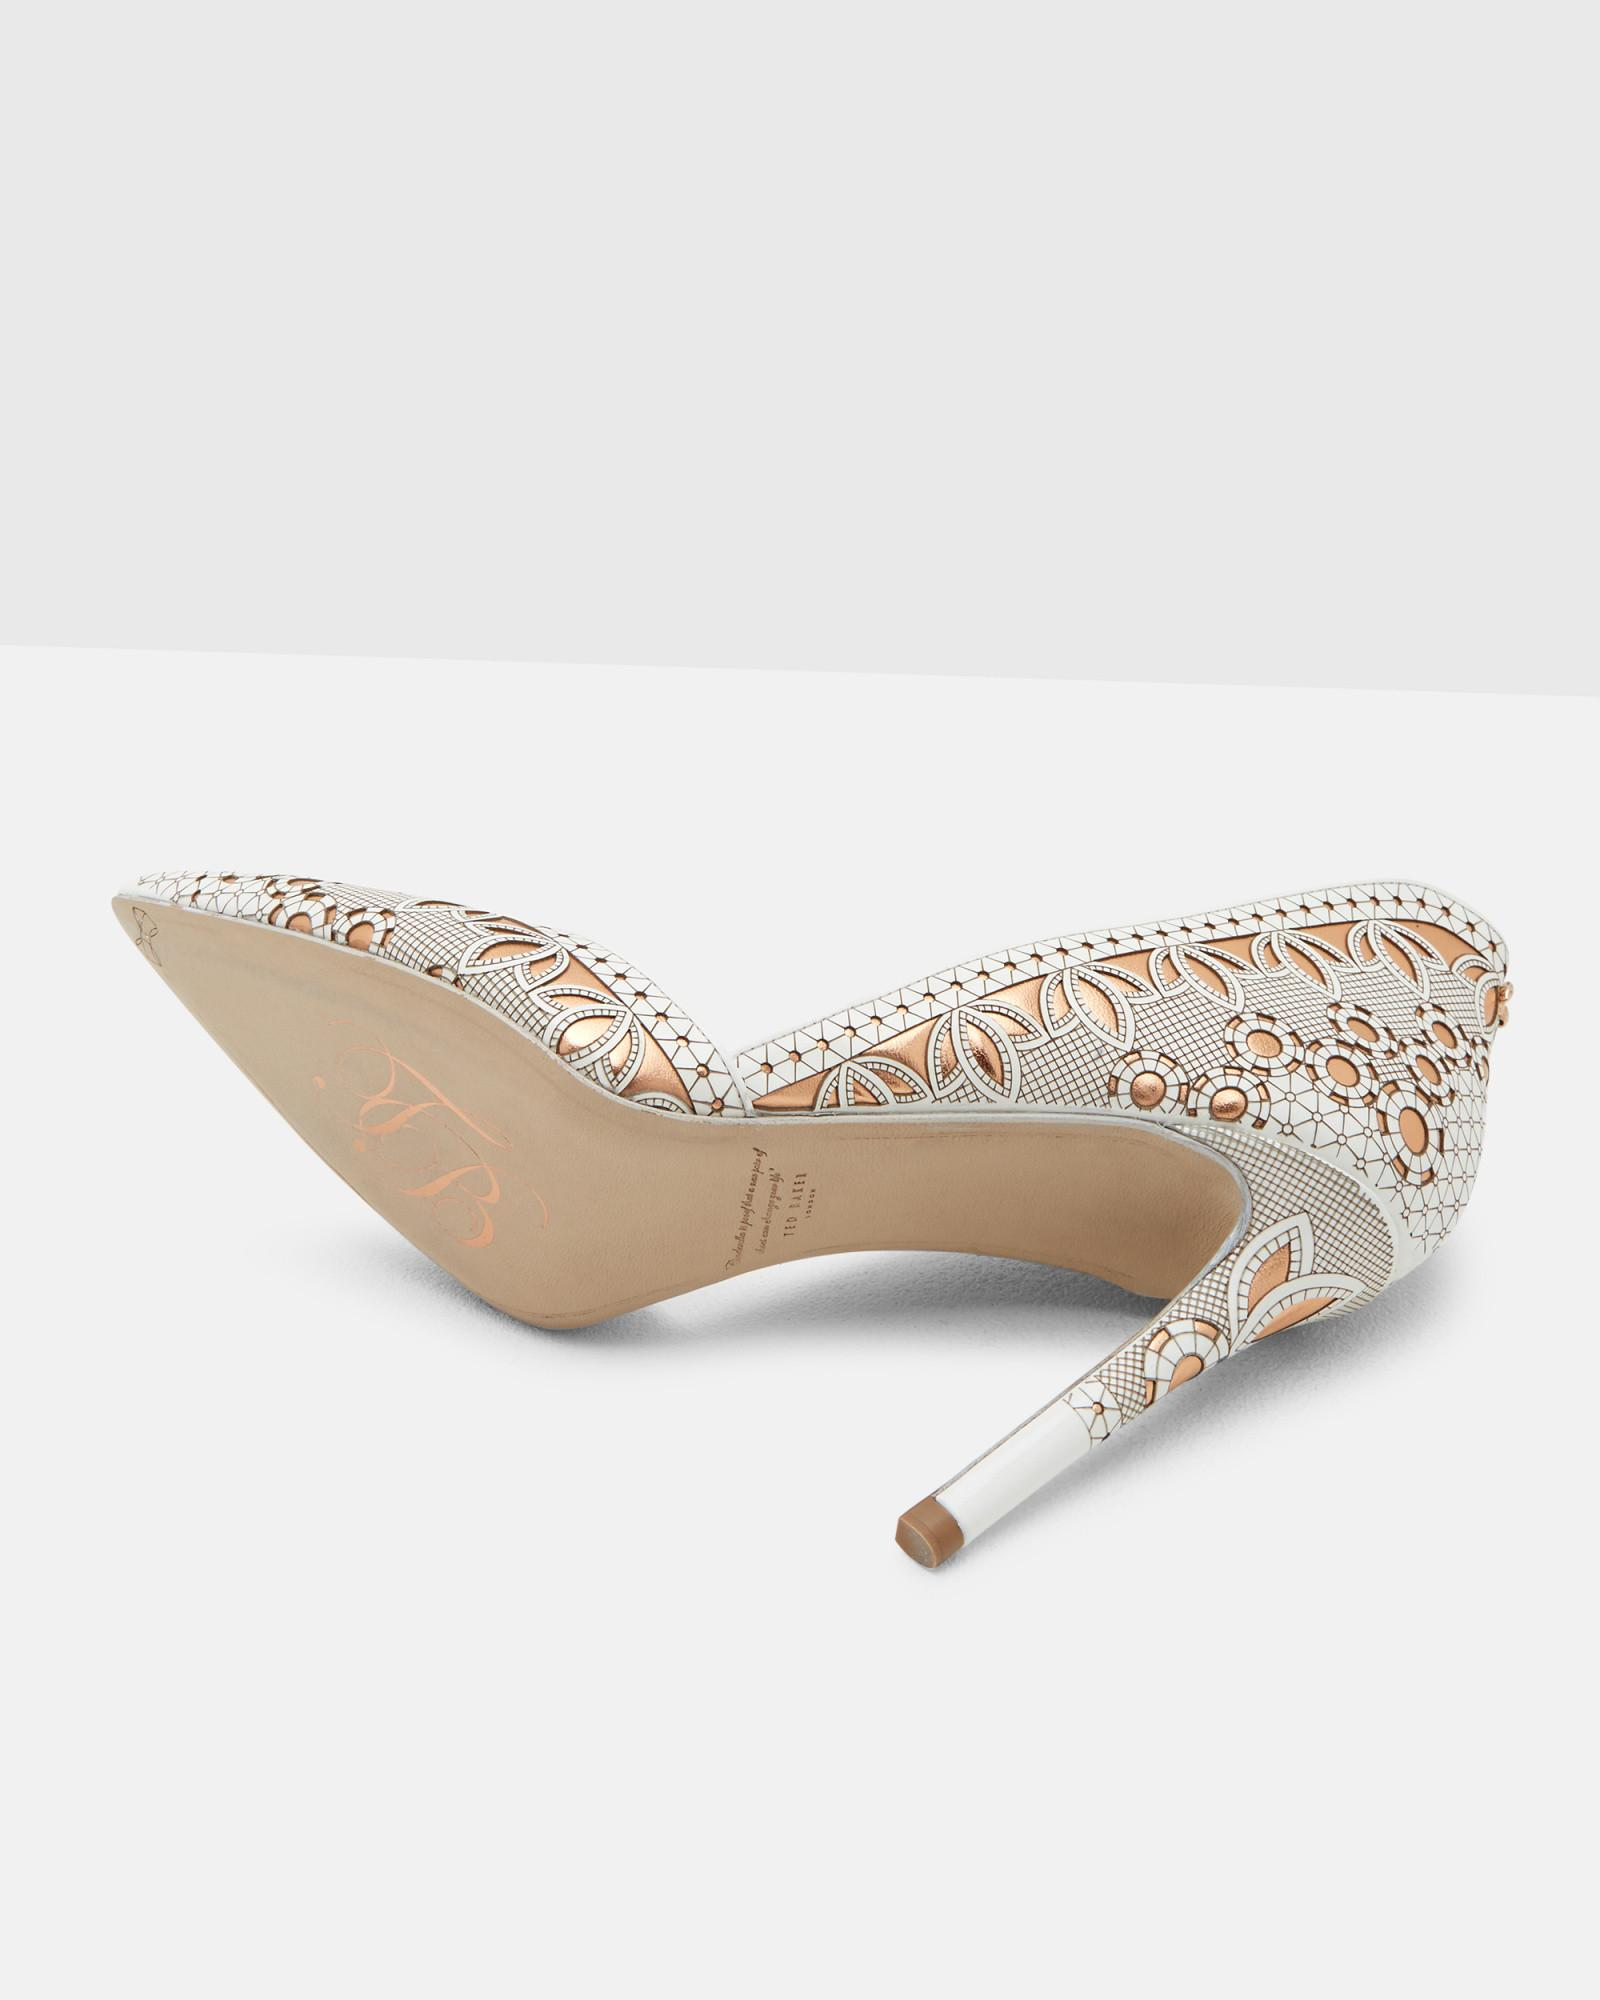 2b3d813685b6dd Lyst - Ted Baker Lazer Cut Leather Heeled Courts in White